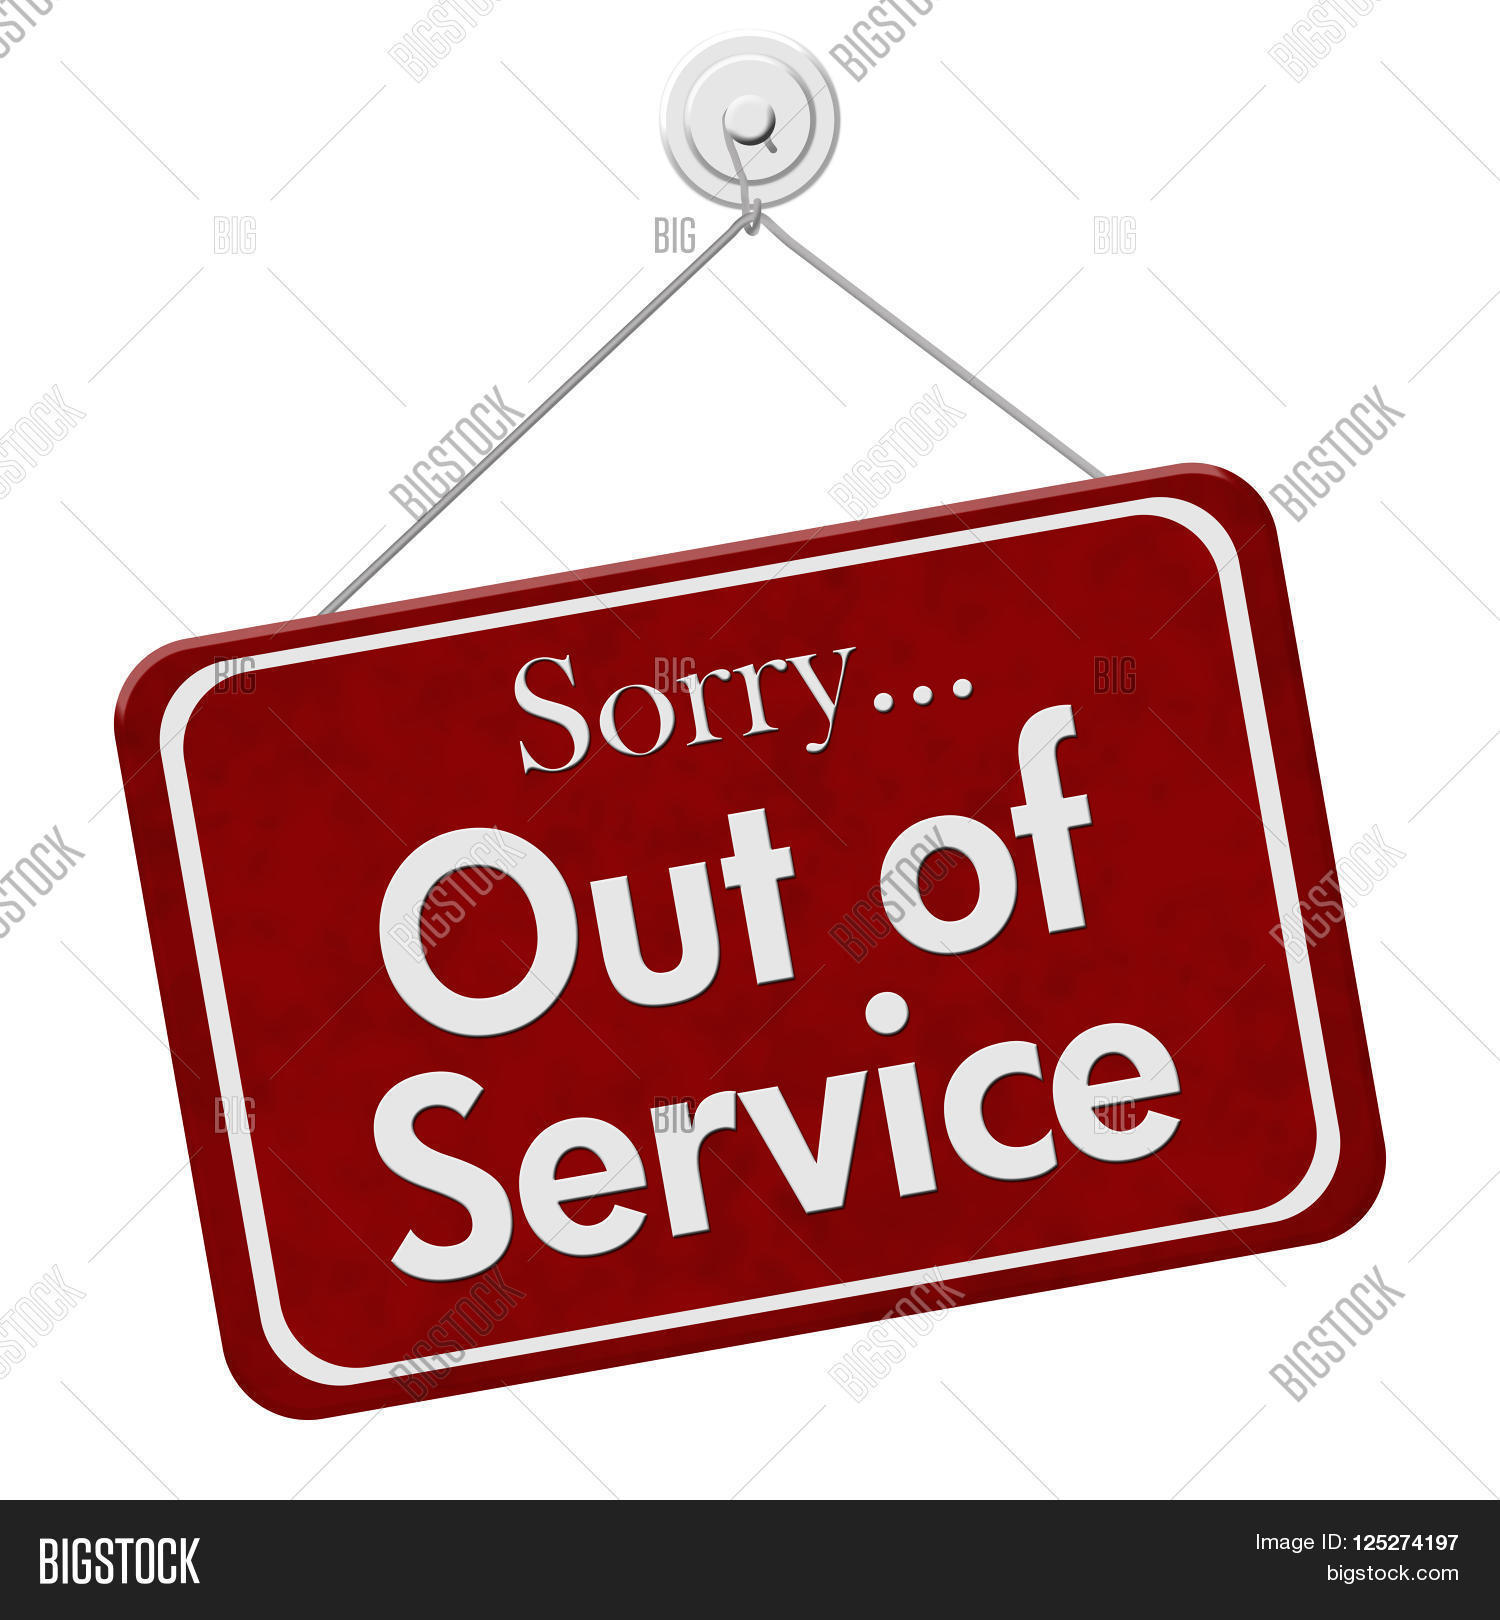 Sorry Out of Service A red and white sign with the words Sorry Out ...